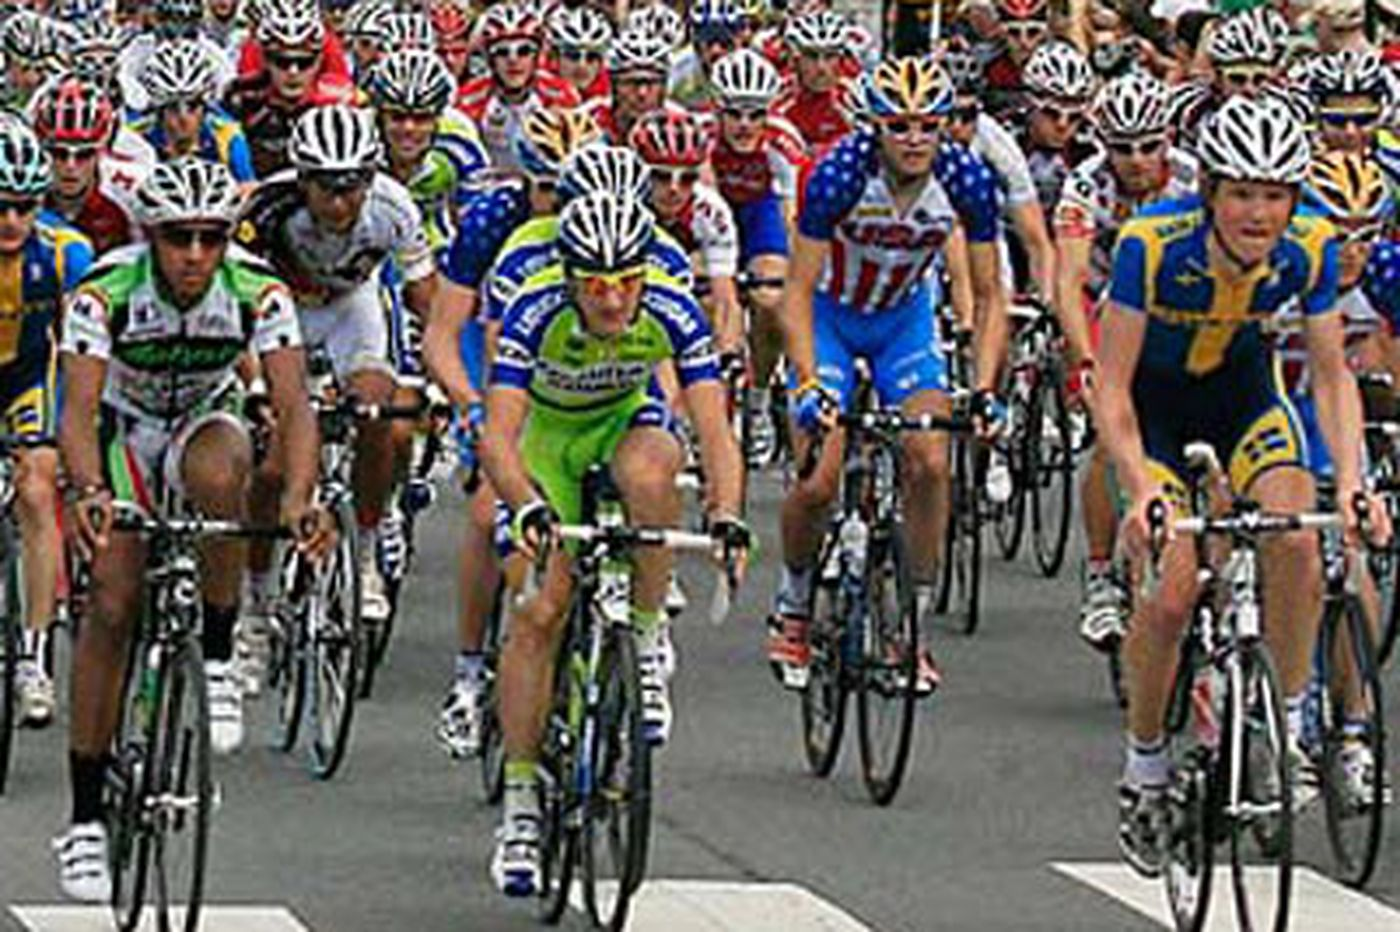 Bike-race organizers owe Philly $321,000 for 2012 event